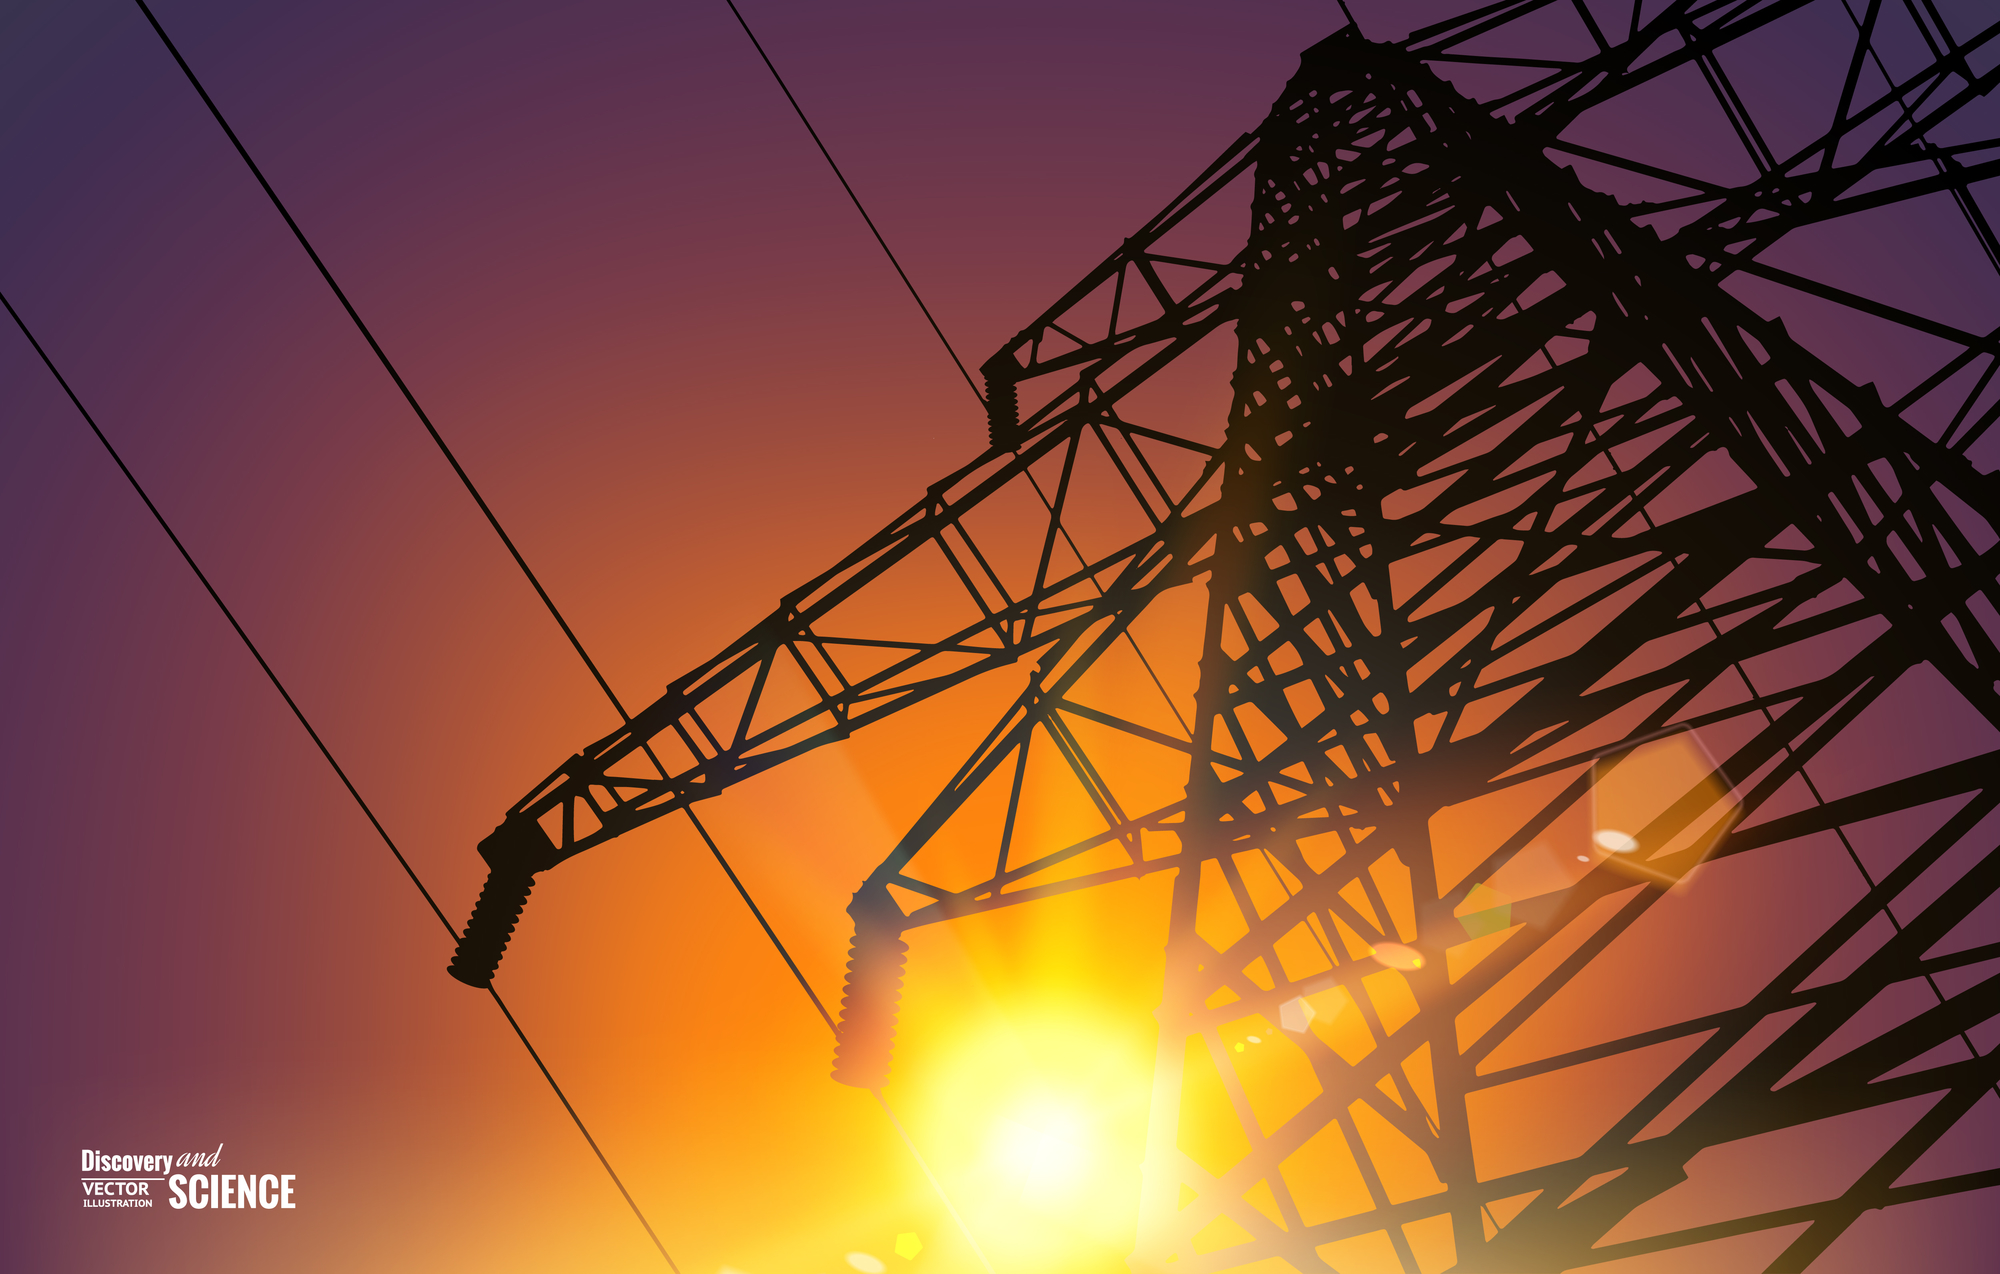 Private sector participation (PSP) models in electricity transmission